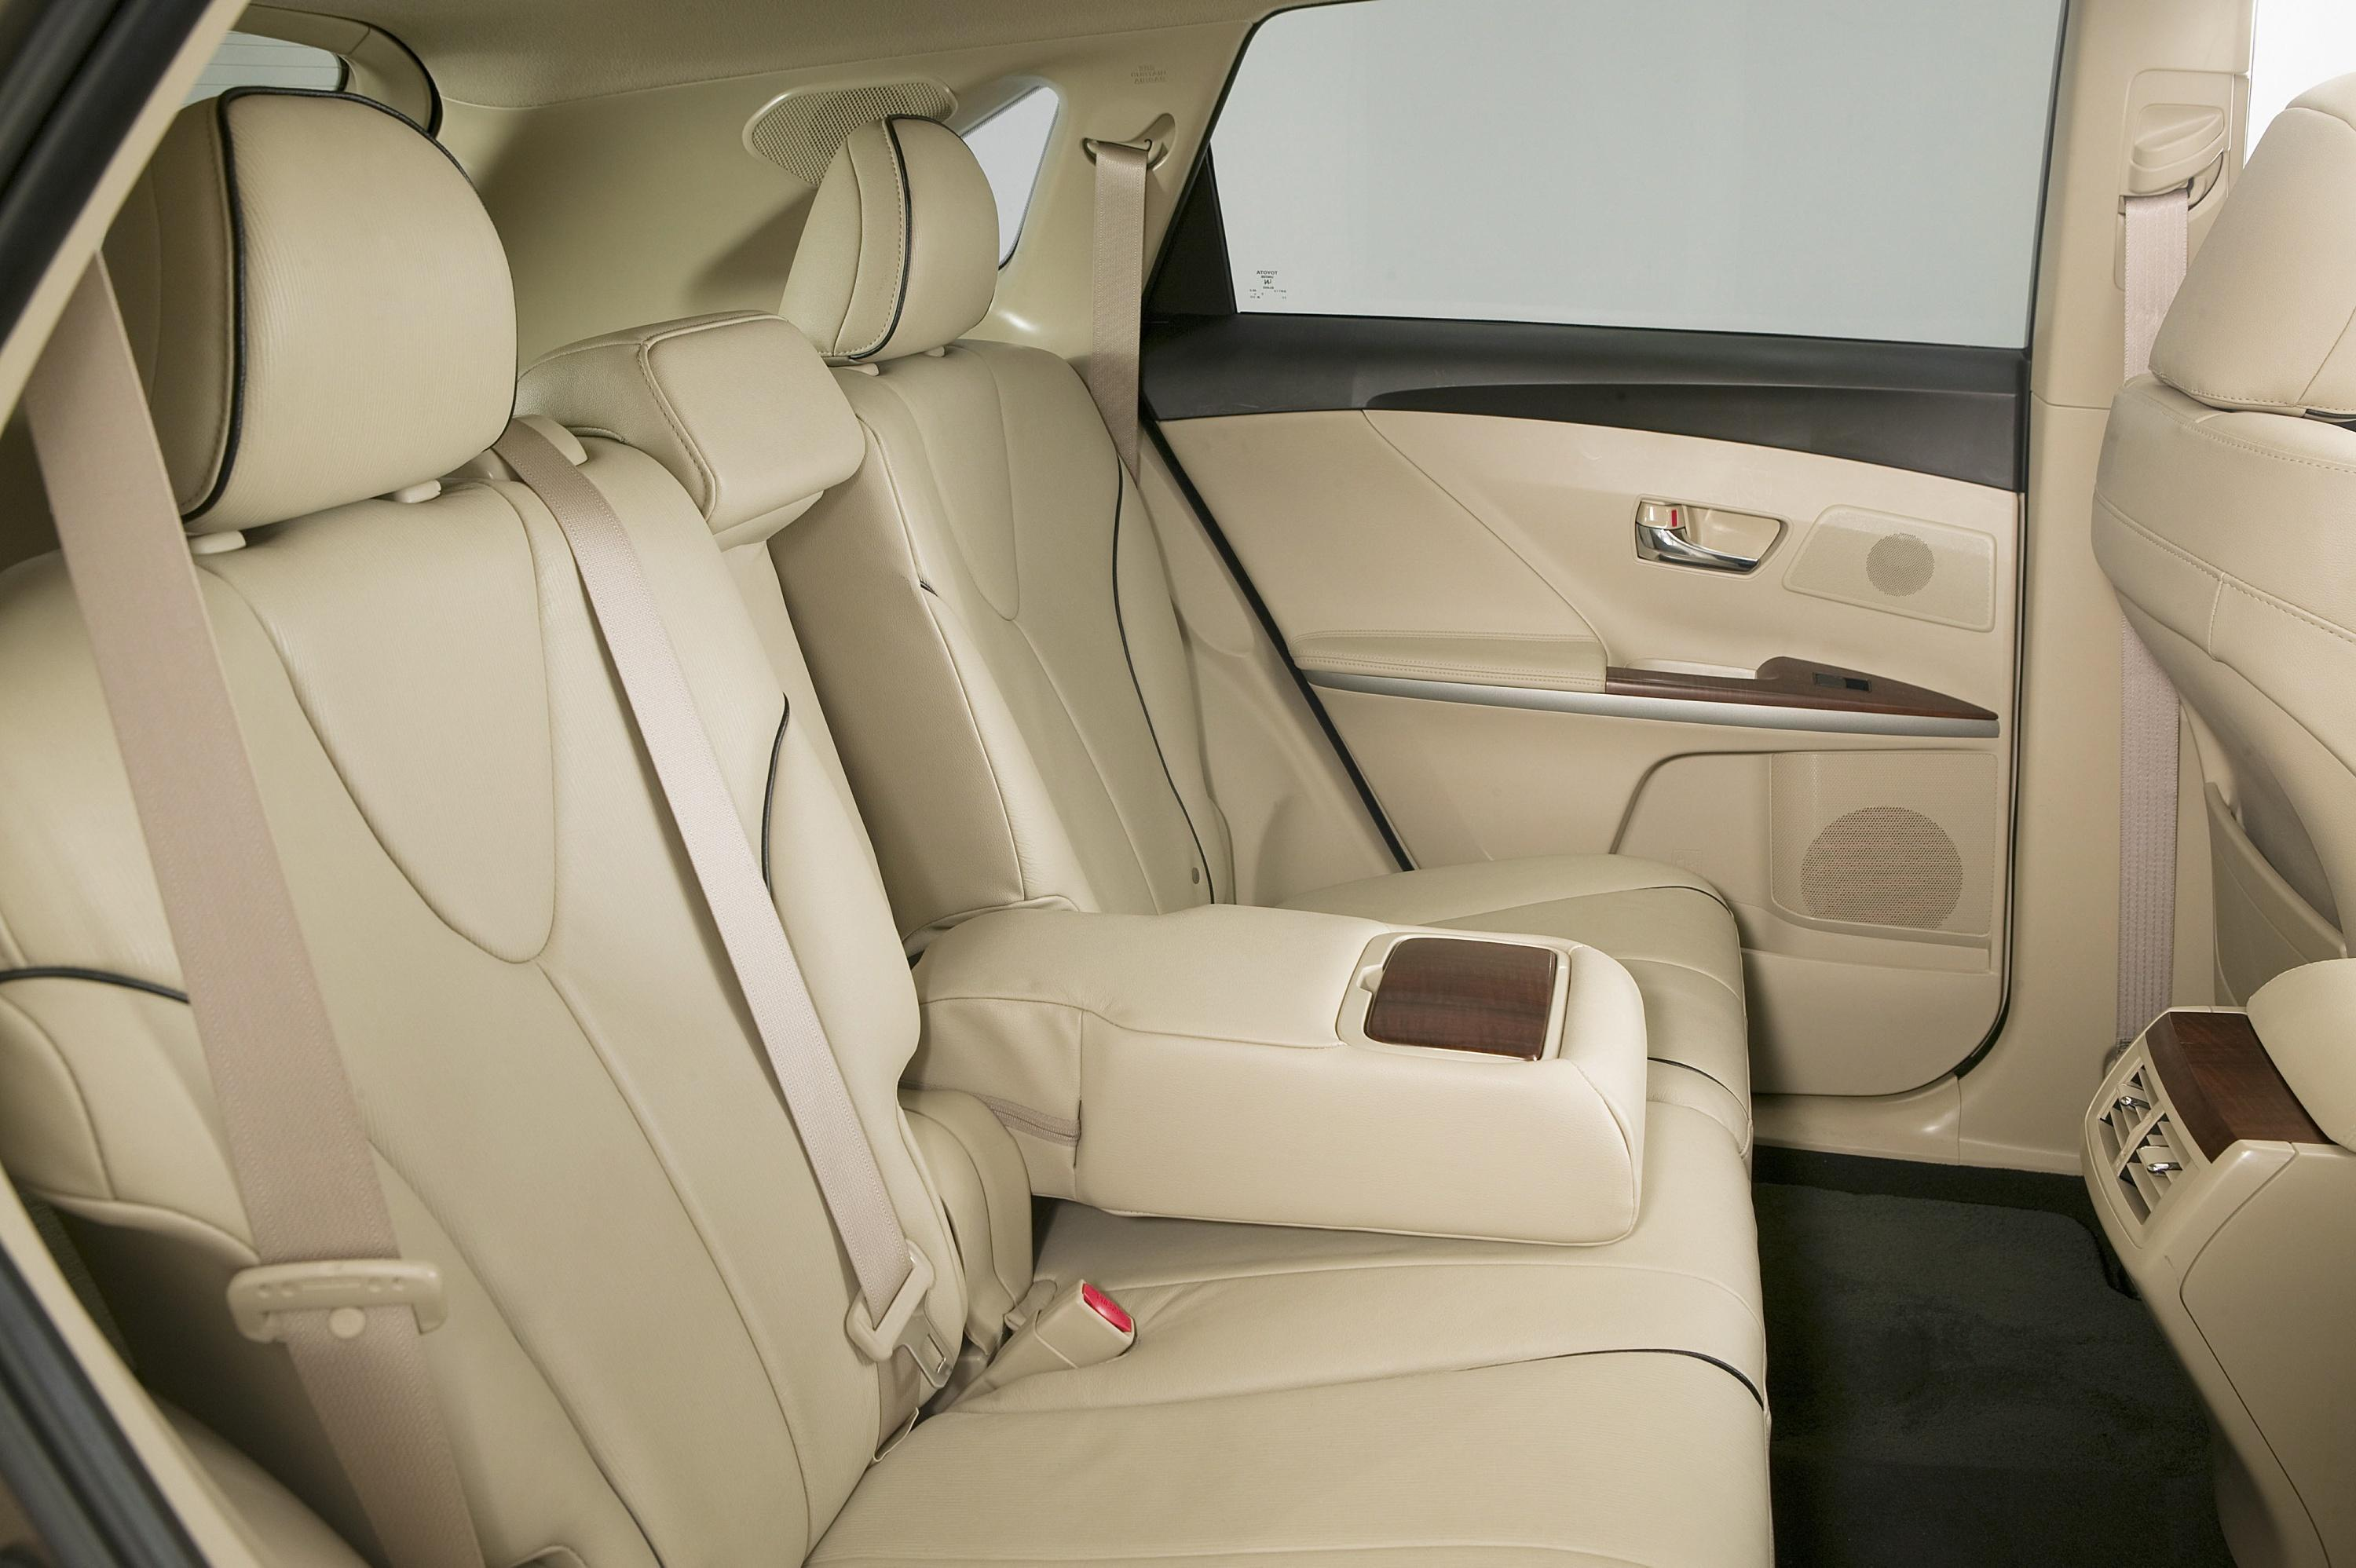 Toyota S New 2009 Venza Optimizes The Traditional